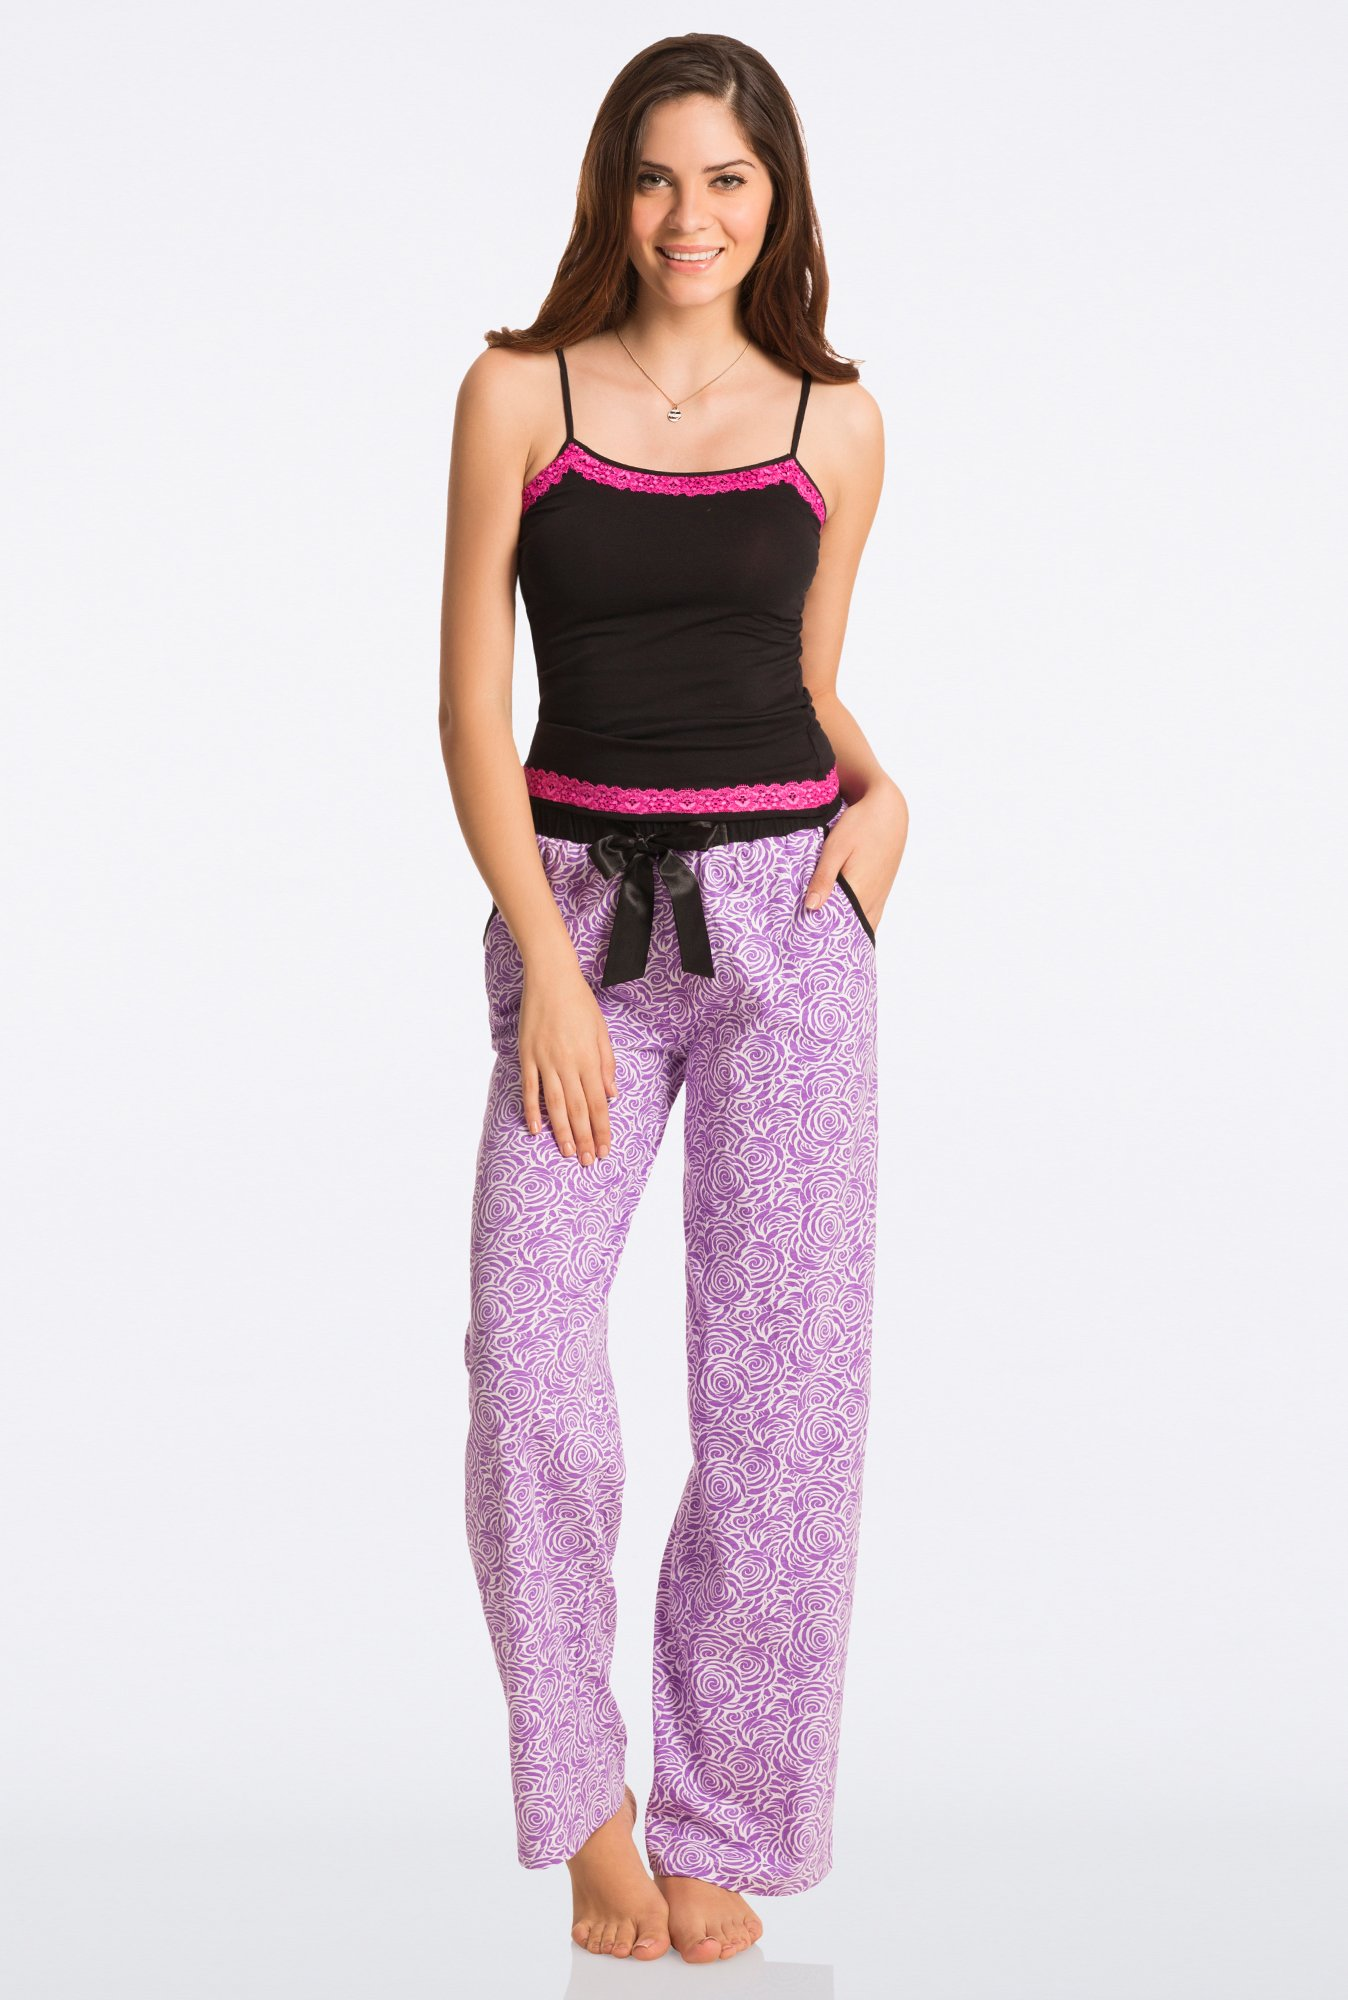 Pretty Secrets Purple Floral Pajama